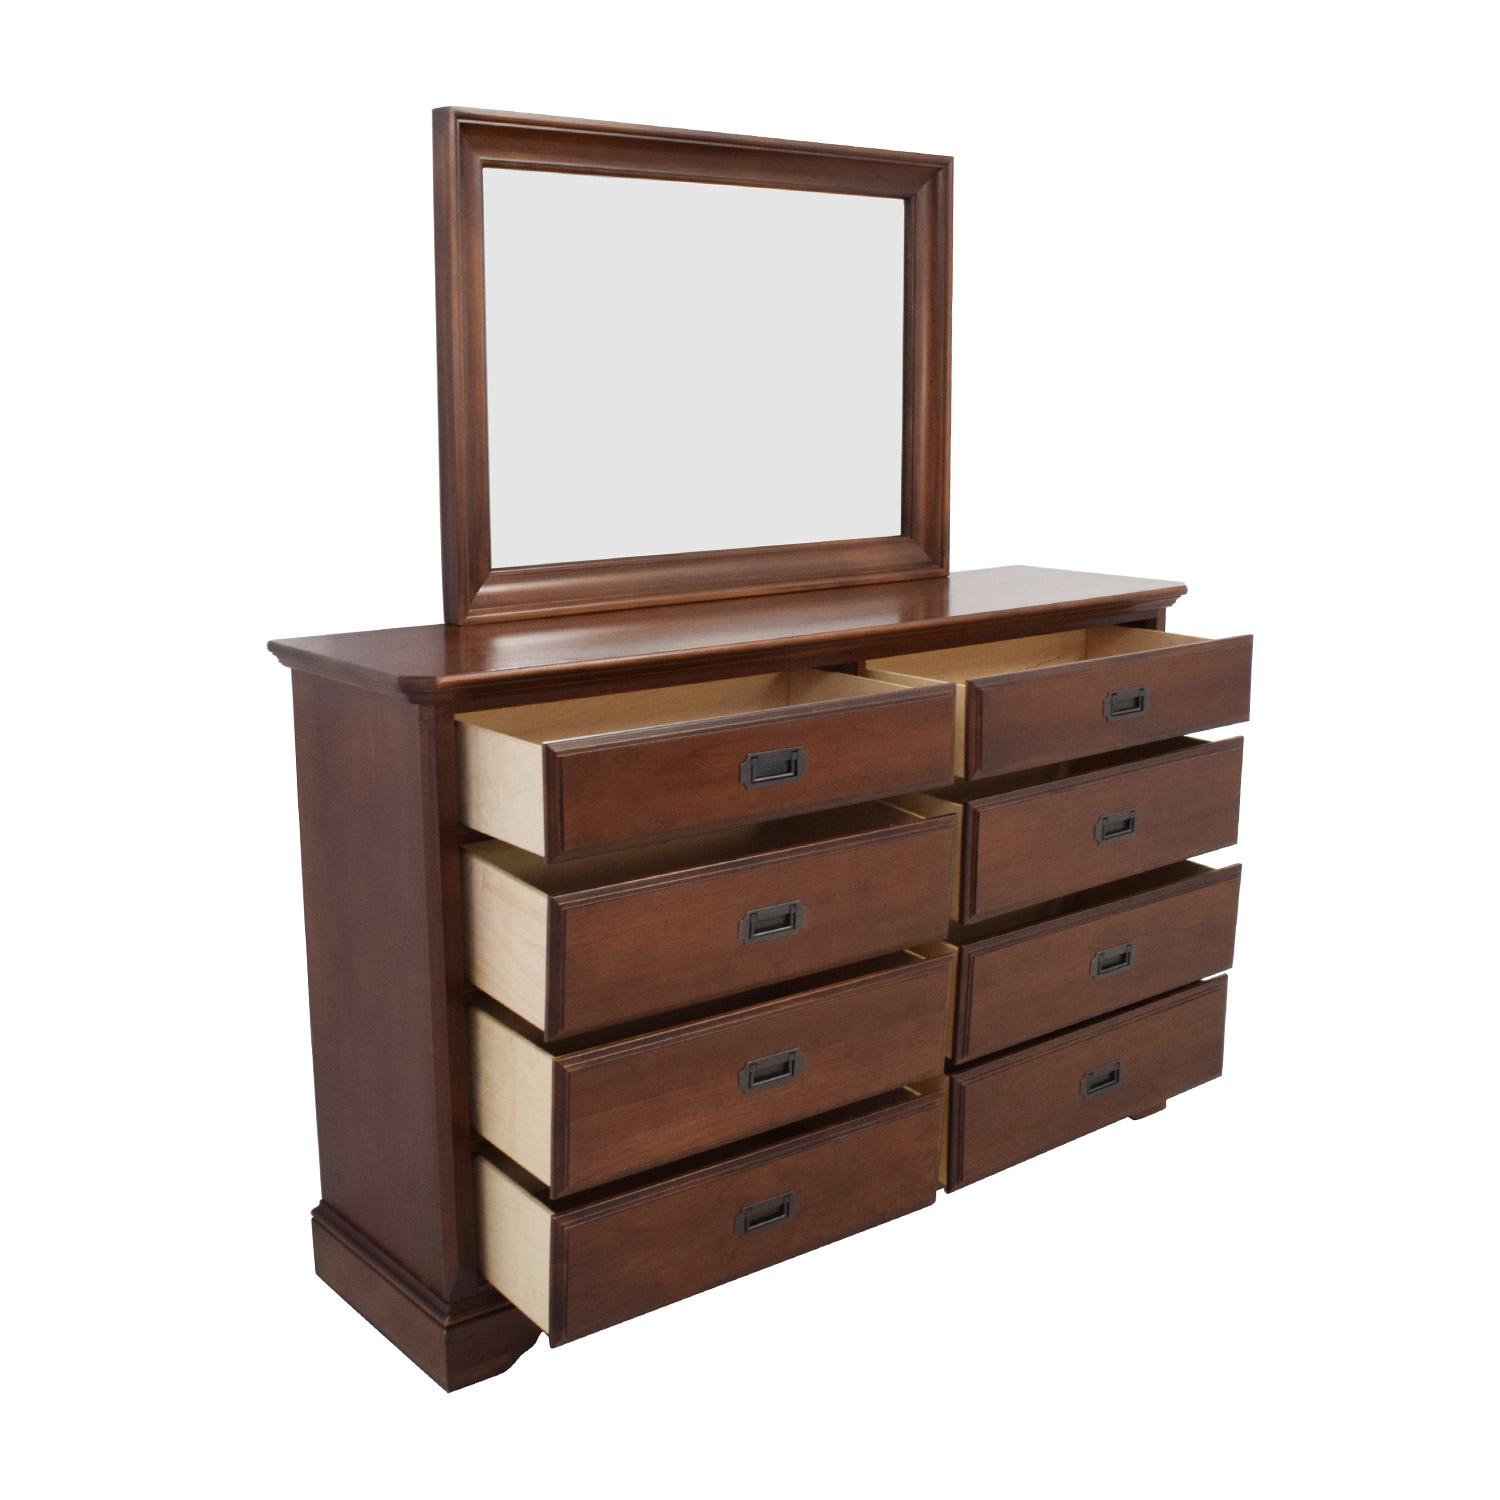 Bassett Coupon: Vaughan Bassett Hardwood Dresser With Mirror